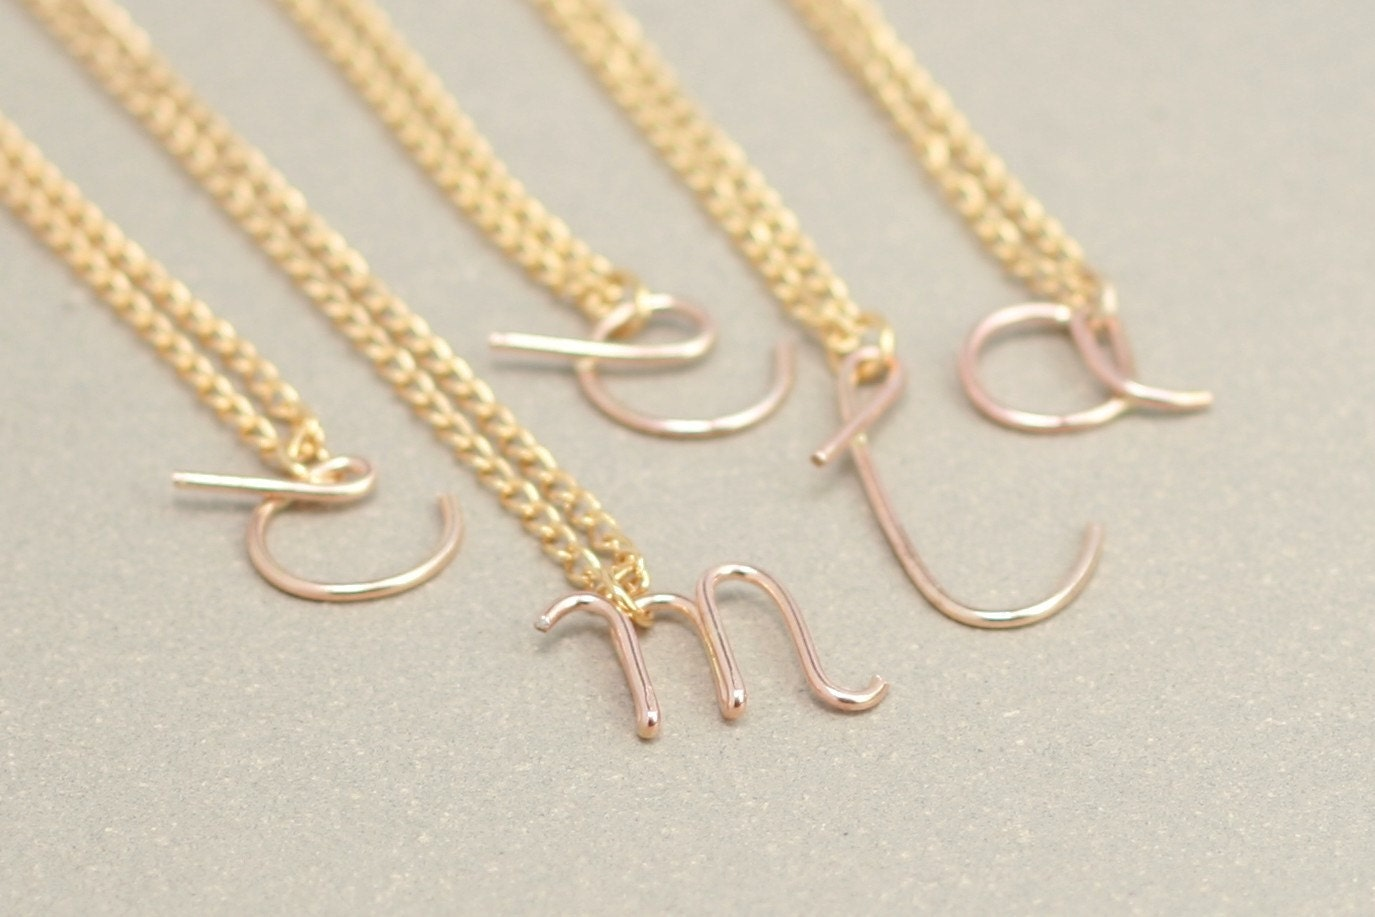 Lowercase Letter Necklace Gold Initial Necklace Personalized Letter Lowercase Cursive